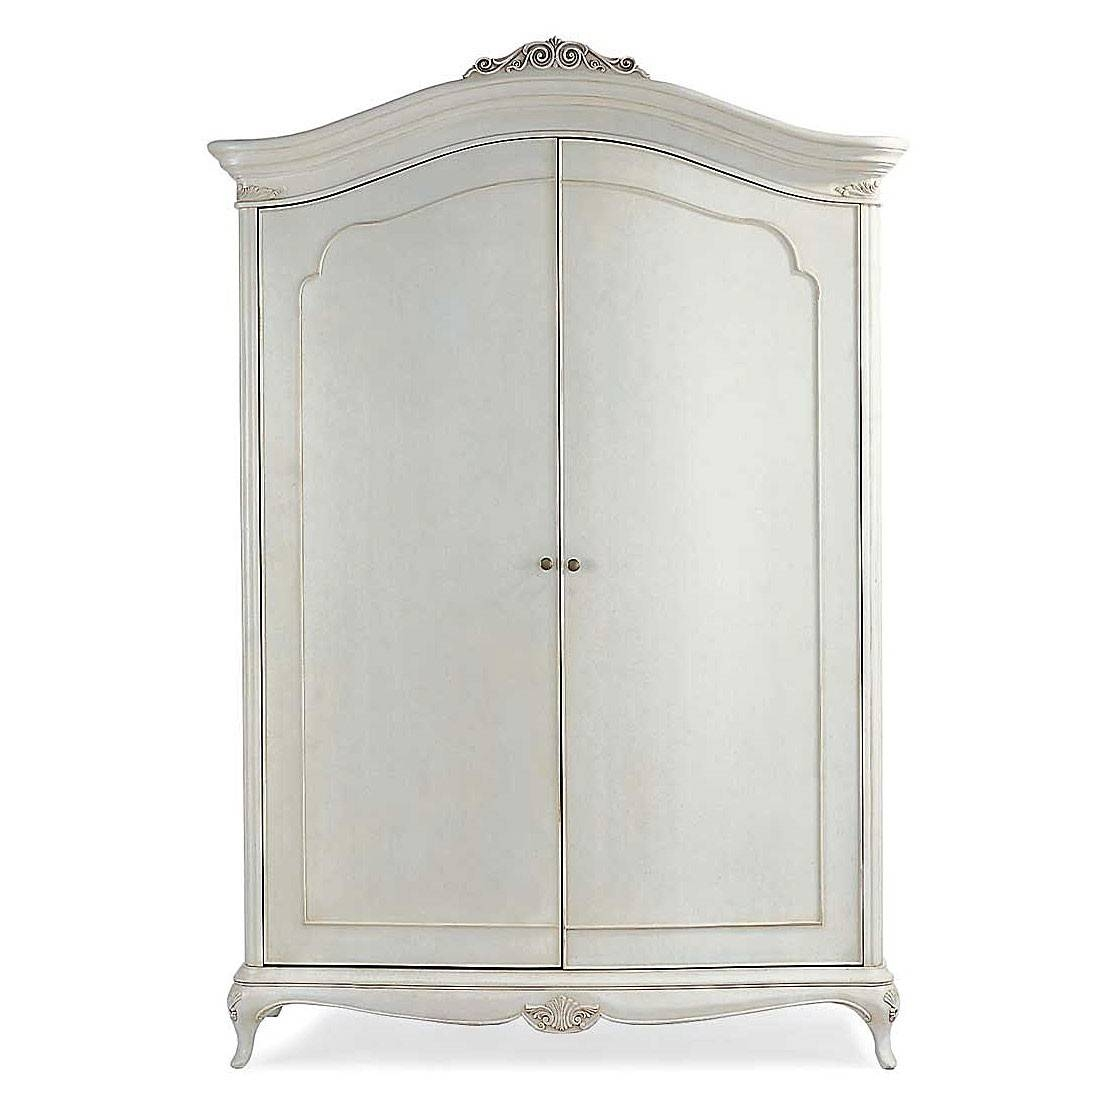 French Style Wardrobes & Armoires - Crown French Furniture within White French Style Wardrobes (Image 7 of 15)